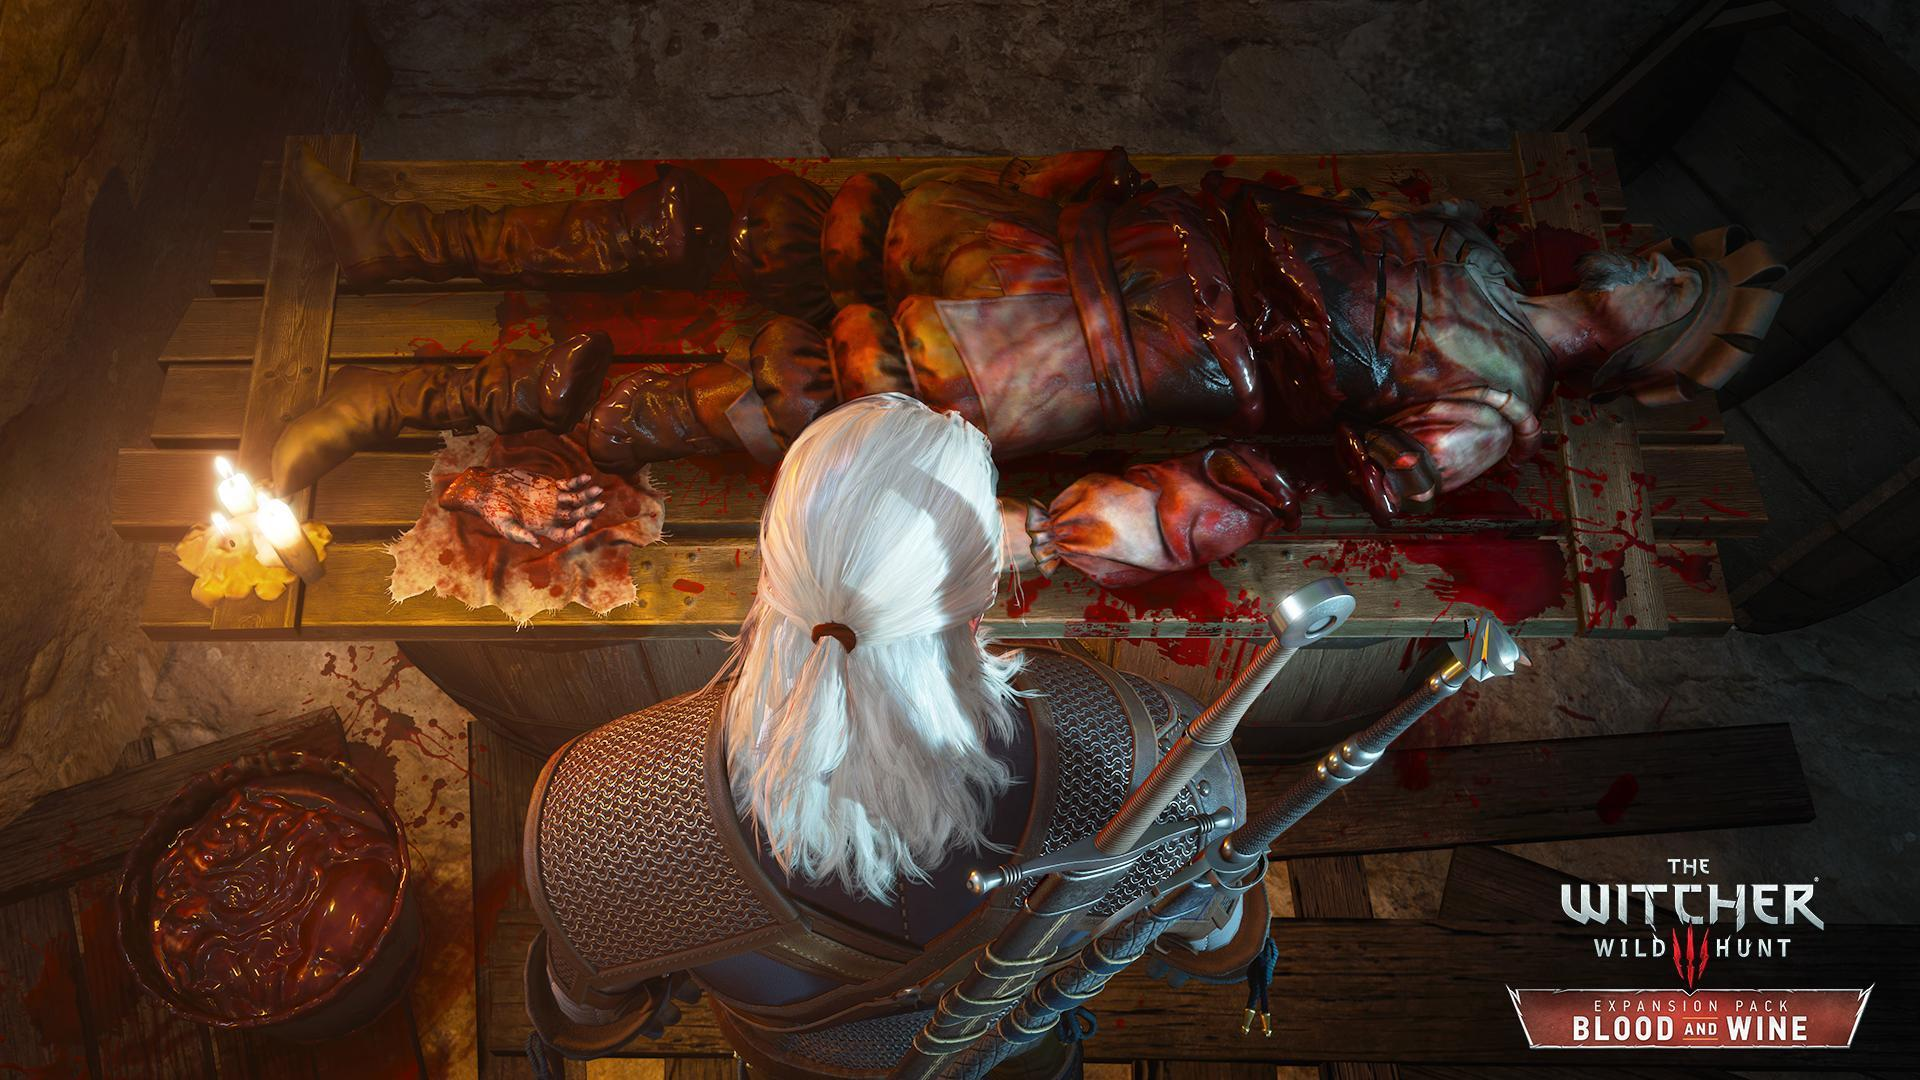 The Witcher 3: Wild Hunt - Gaming - Wasting Your Life